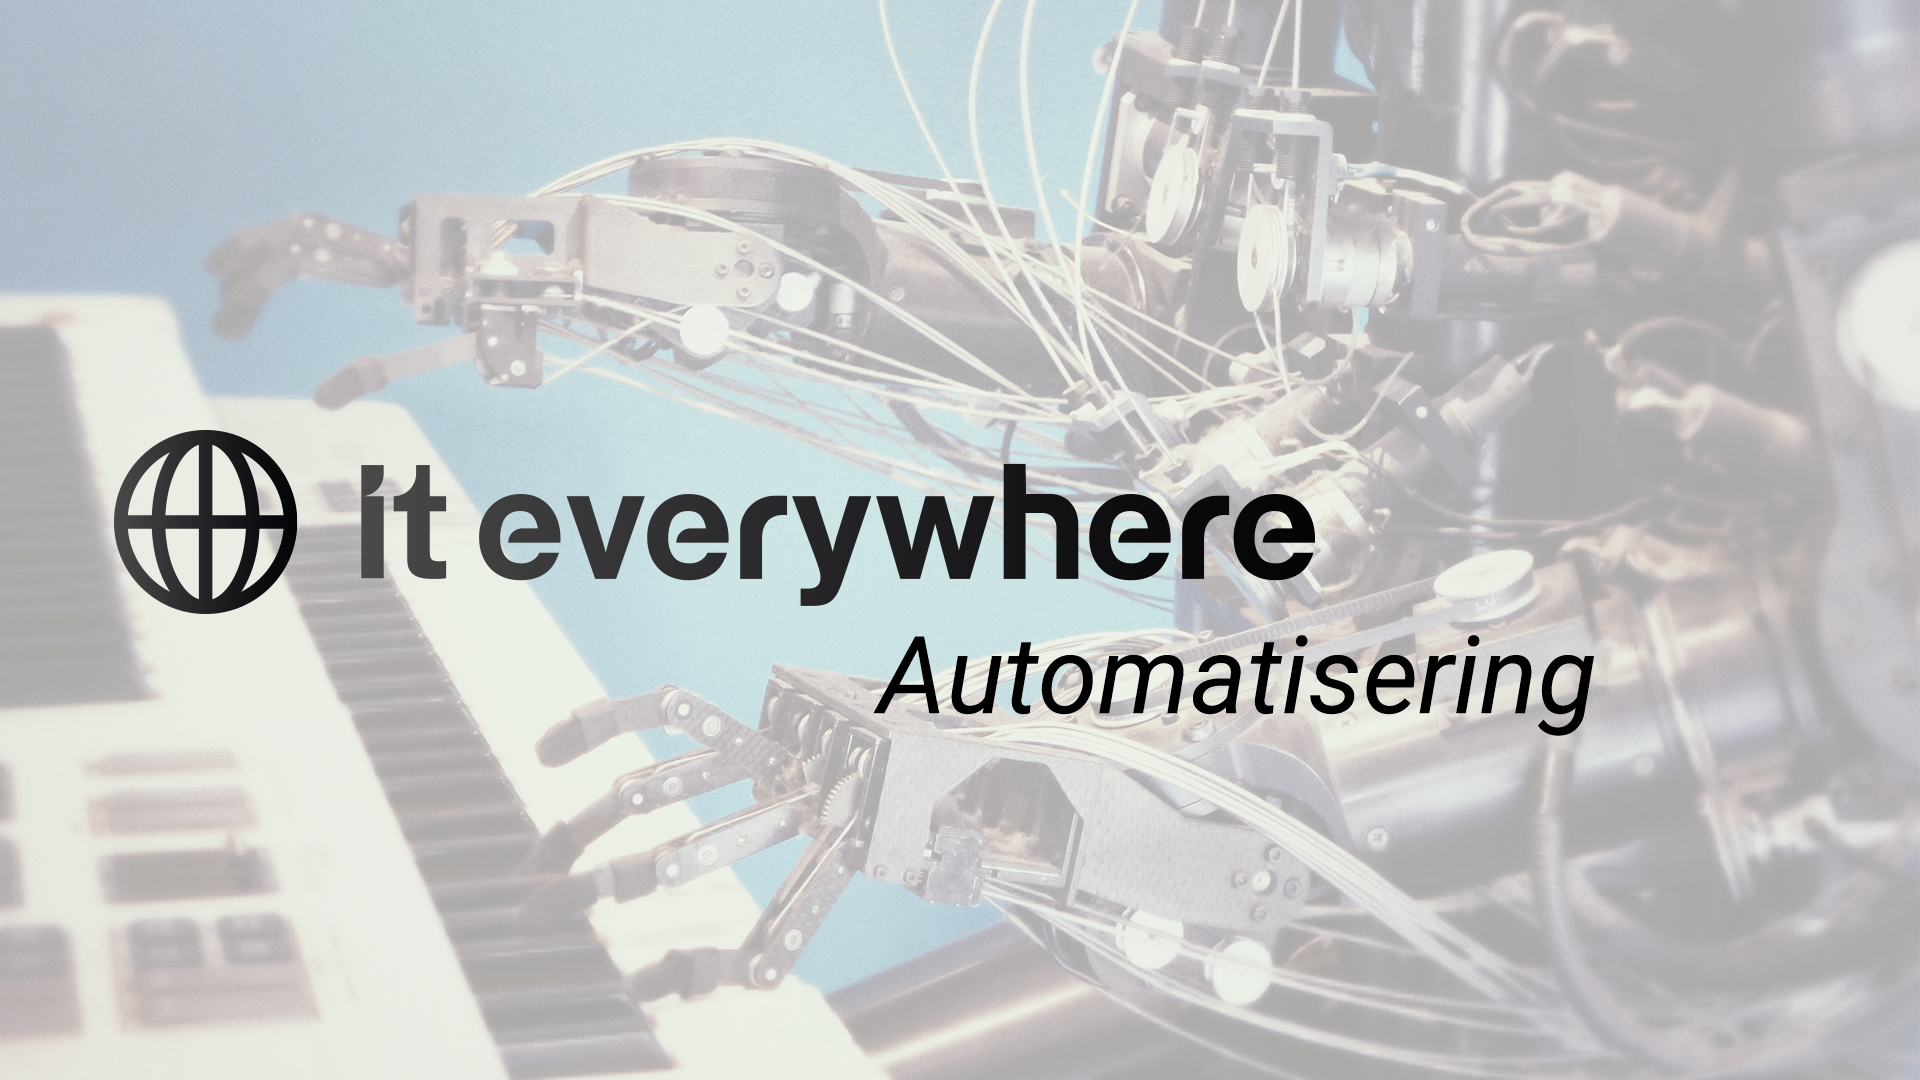 IT-Everywhere Automatisering